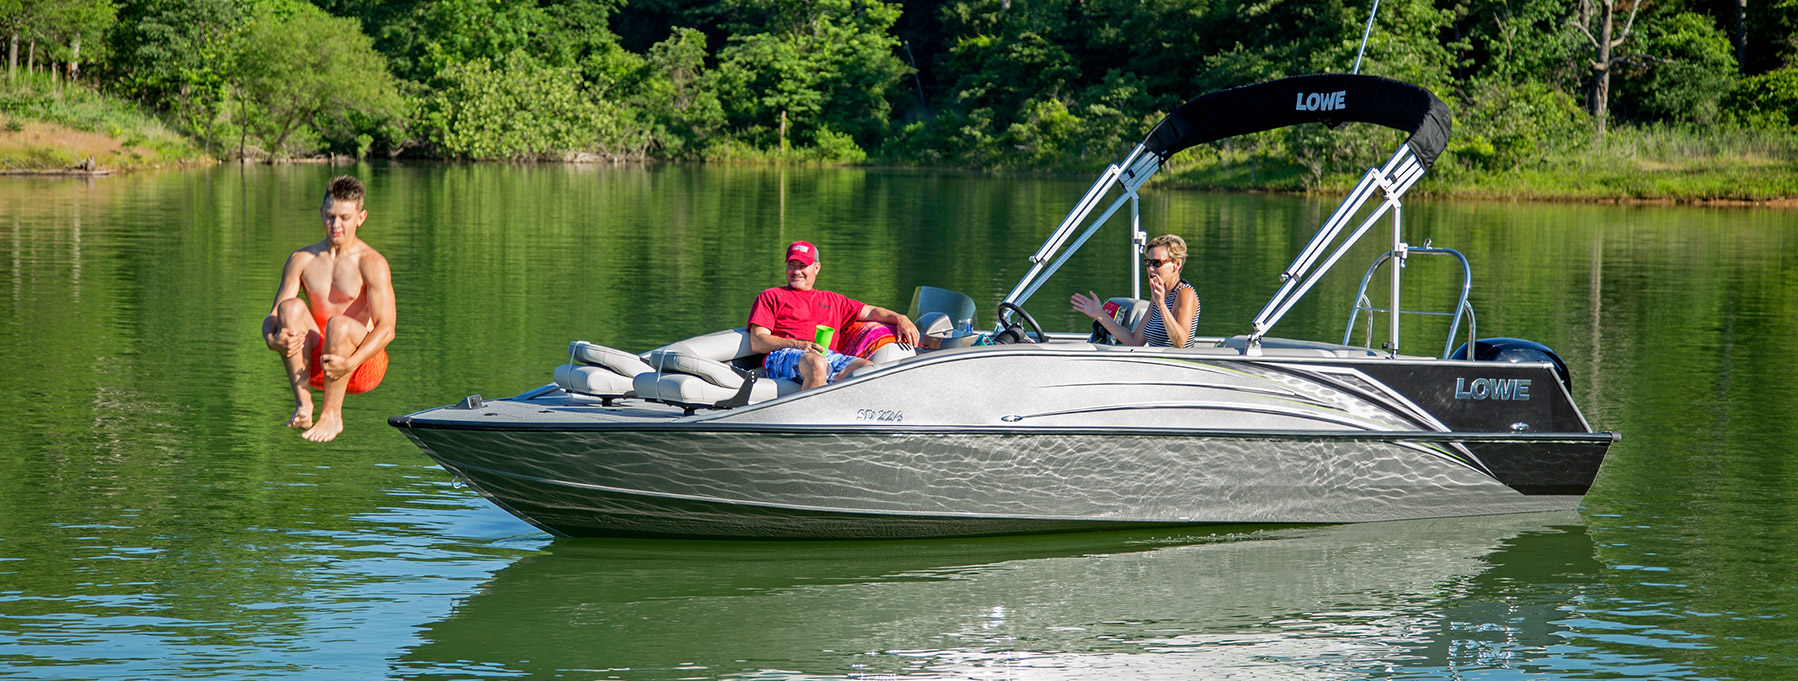 2017 sd224 fishing ski aluminum deck boat lowe boats for Best fish and ski boats 2017